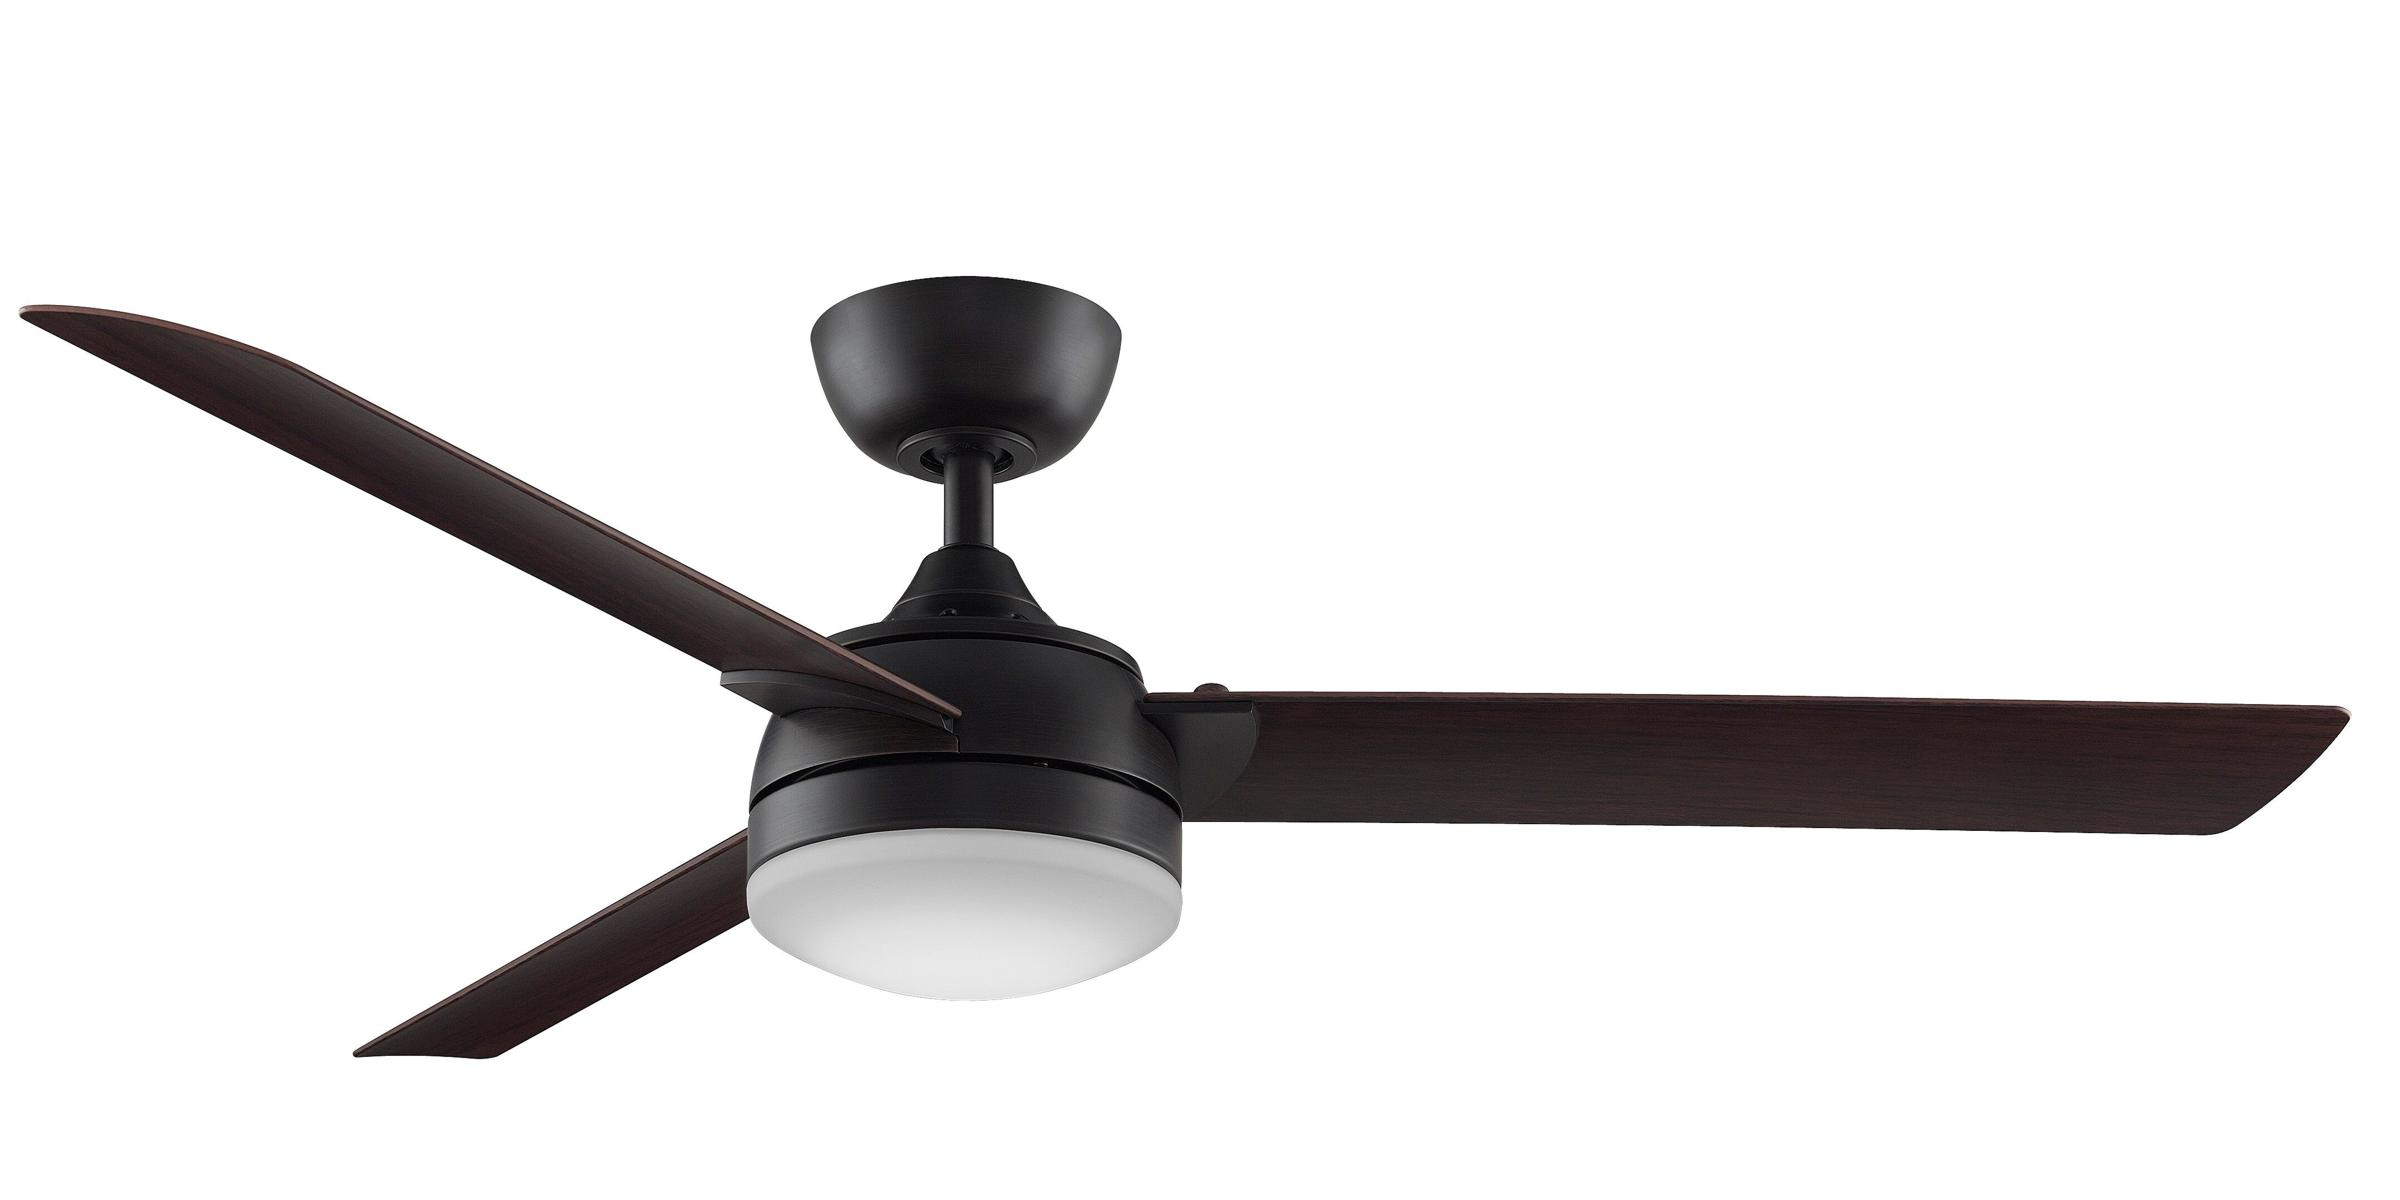 fan in of dia descrete blades available finishes ceiling grey large choice white with fans modern a light